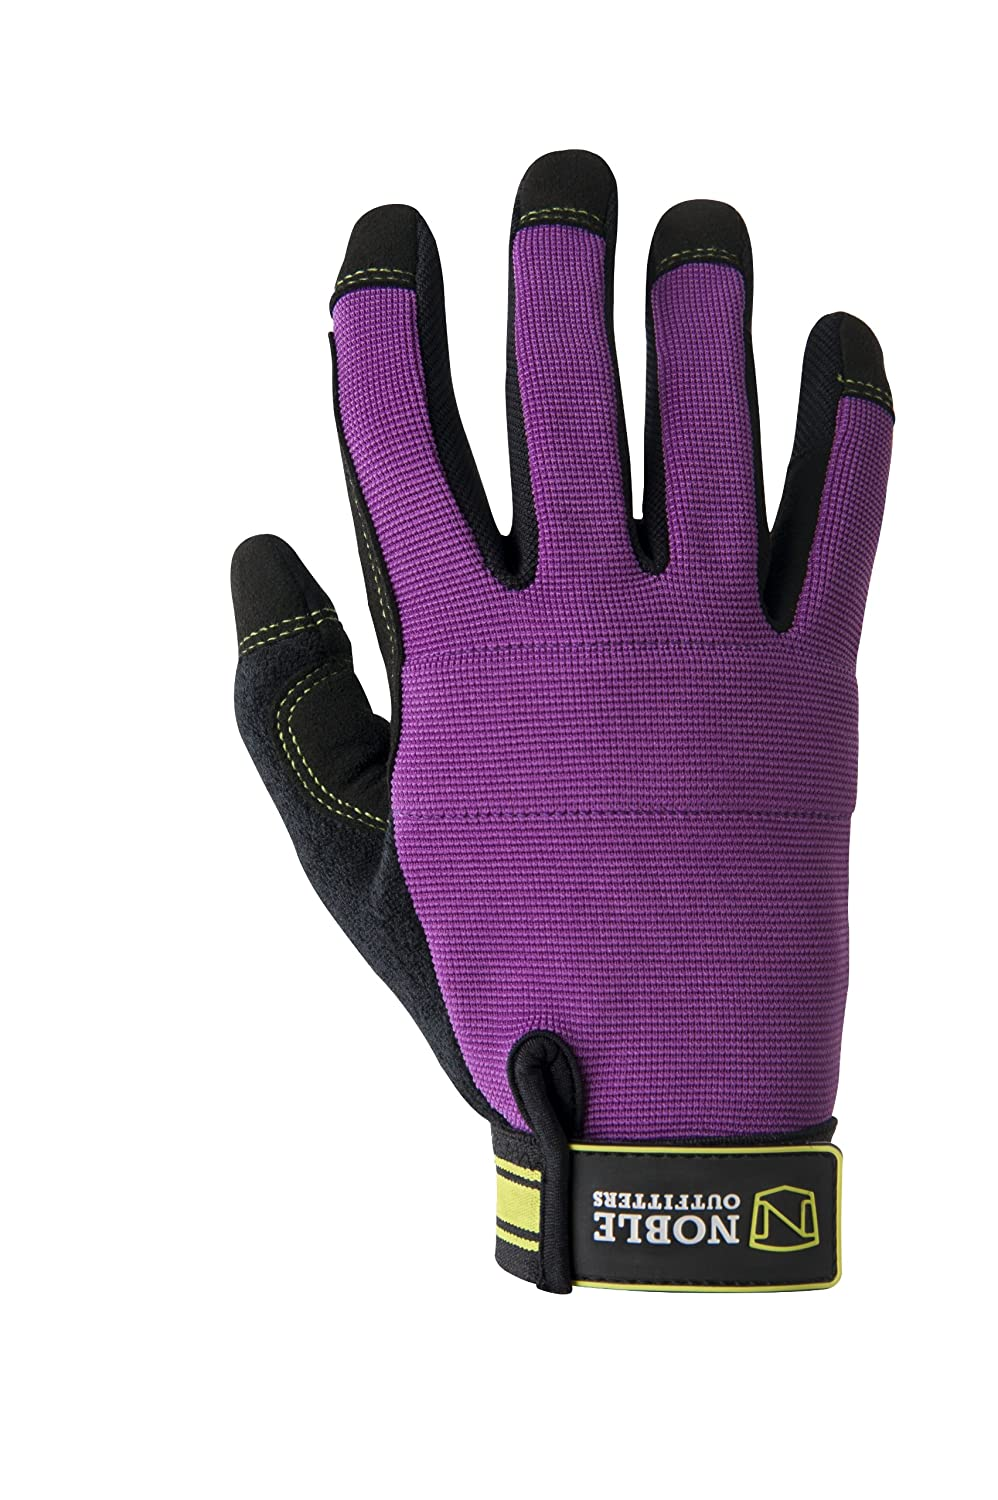 Noble Outfitters Unisex Outrider Glove (XL) (Black/Tan) UTBZ2625